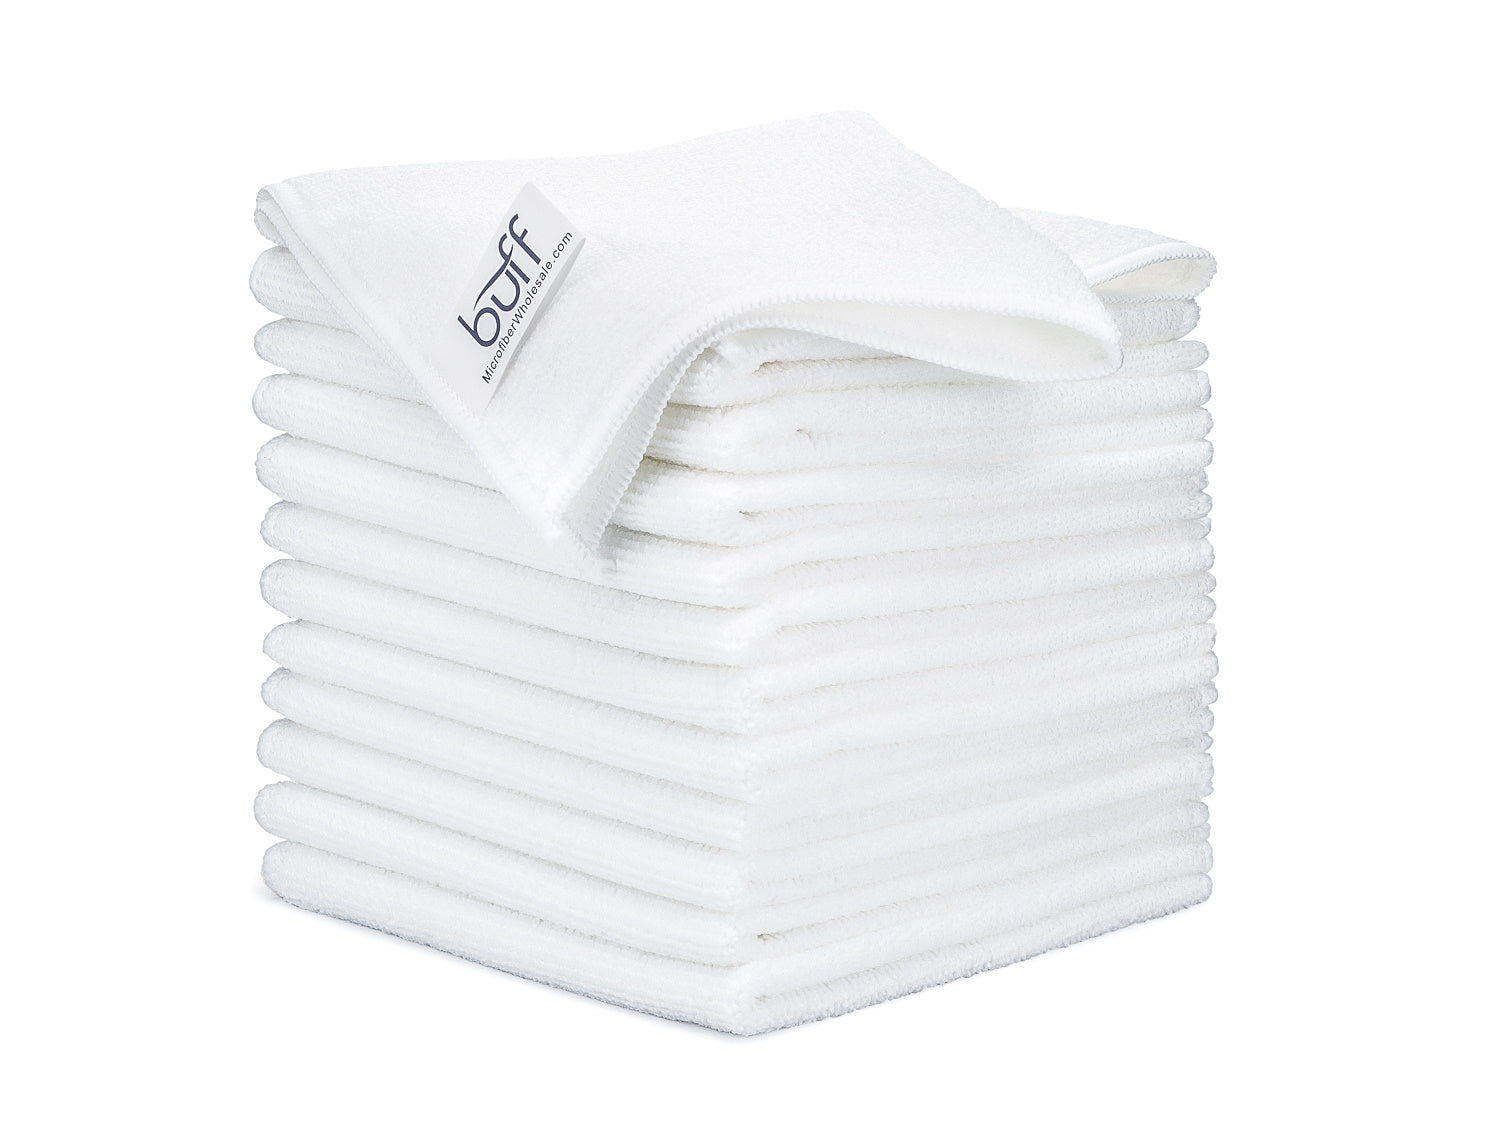 White Microfiber Cleaning Cloths 12 Pack